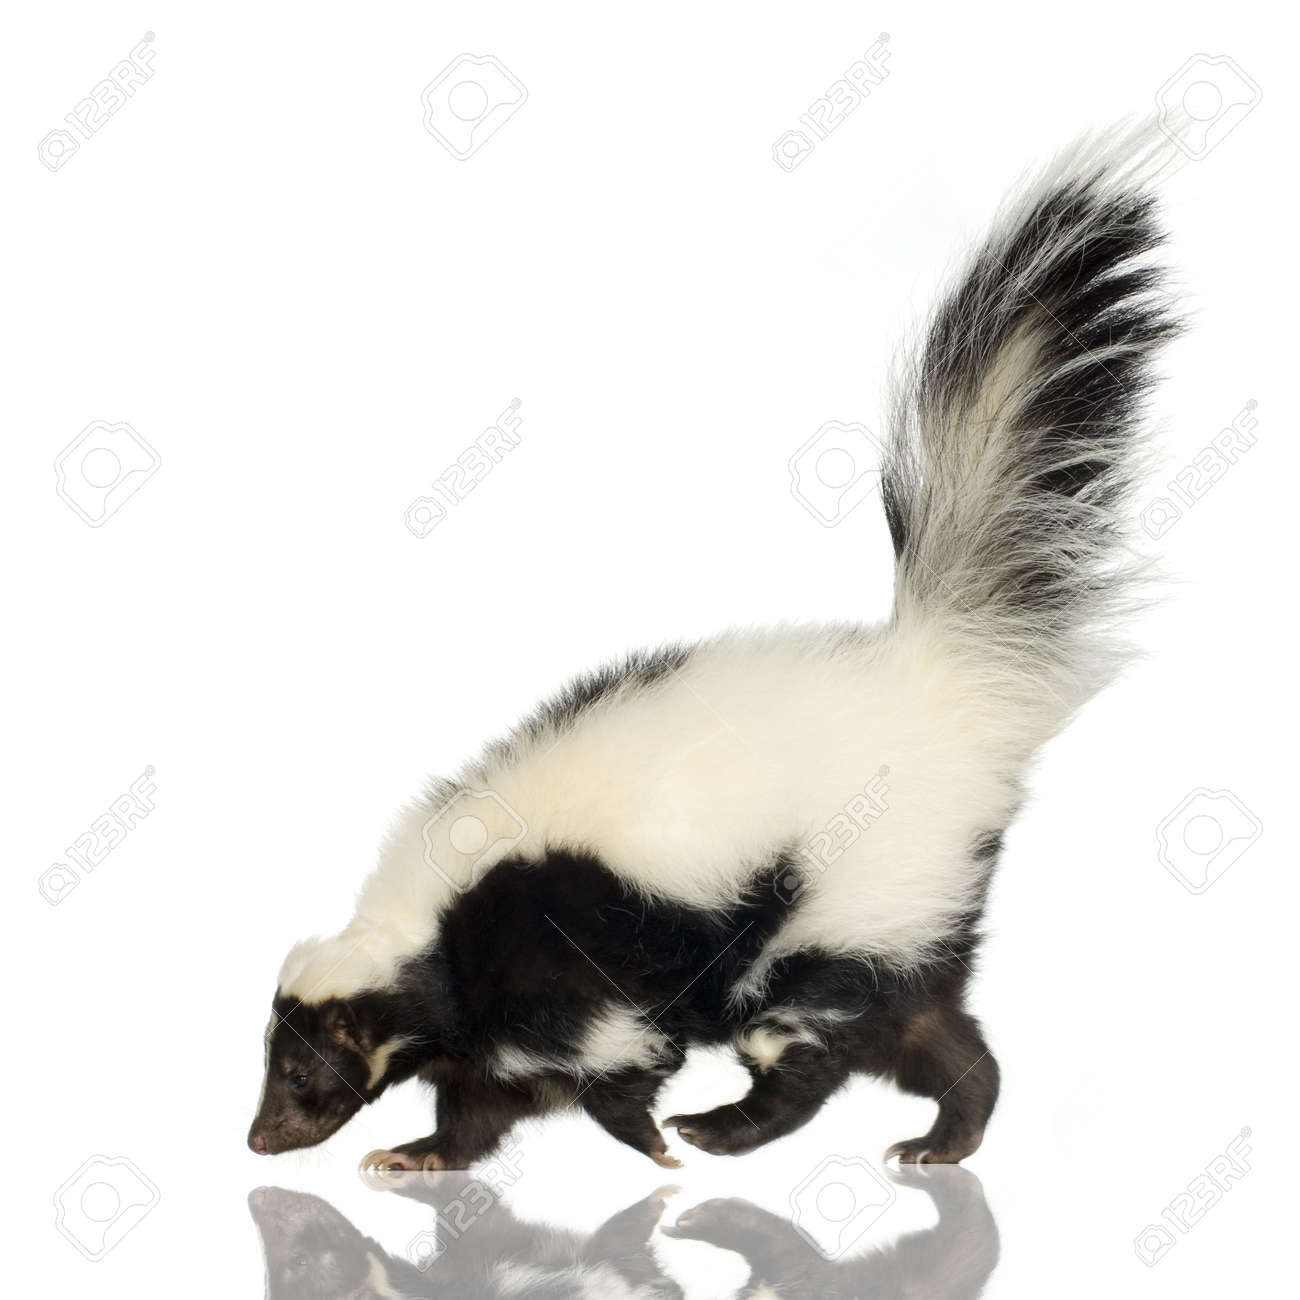 striped skunk mephitis mephitis in front of a white background